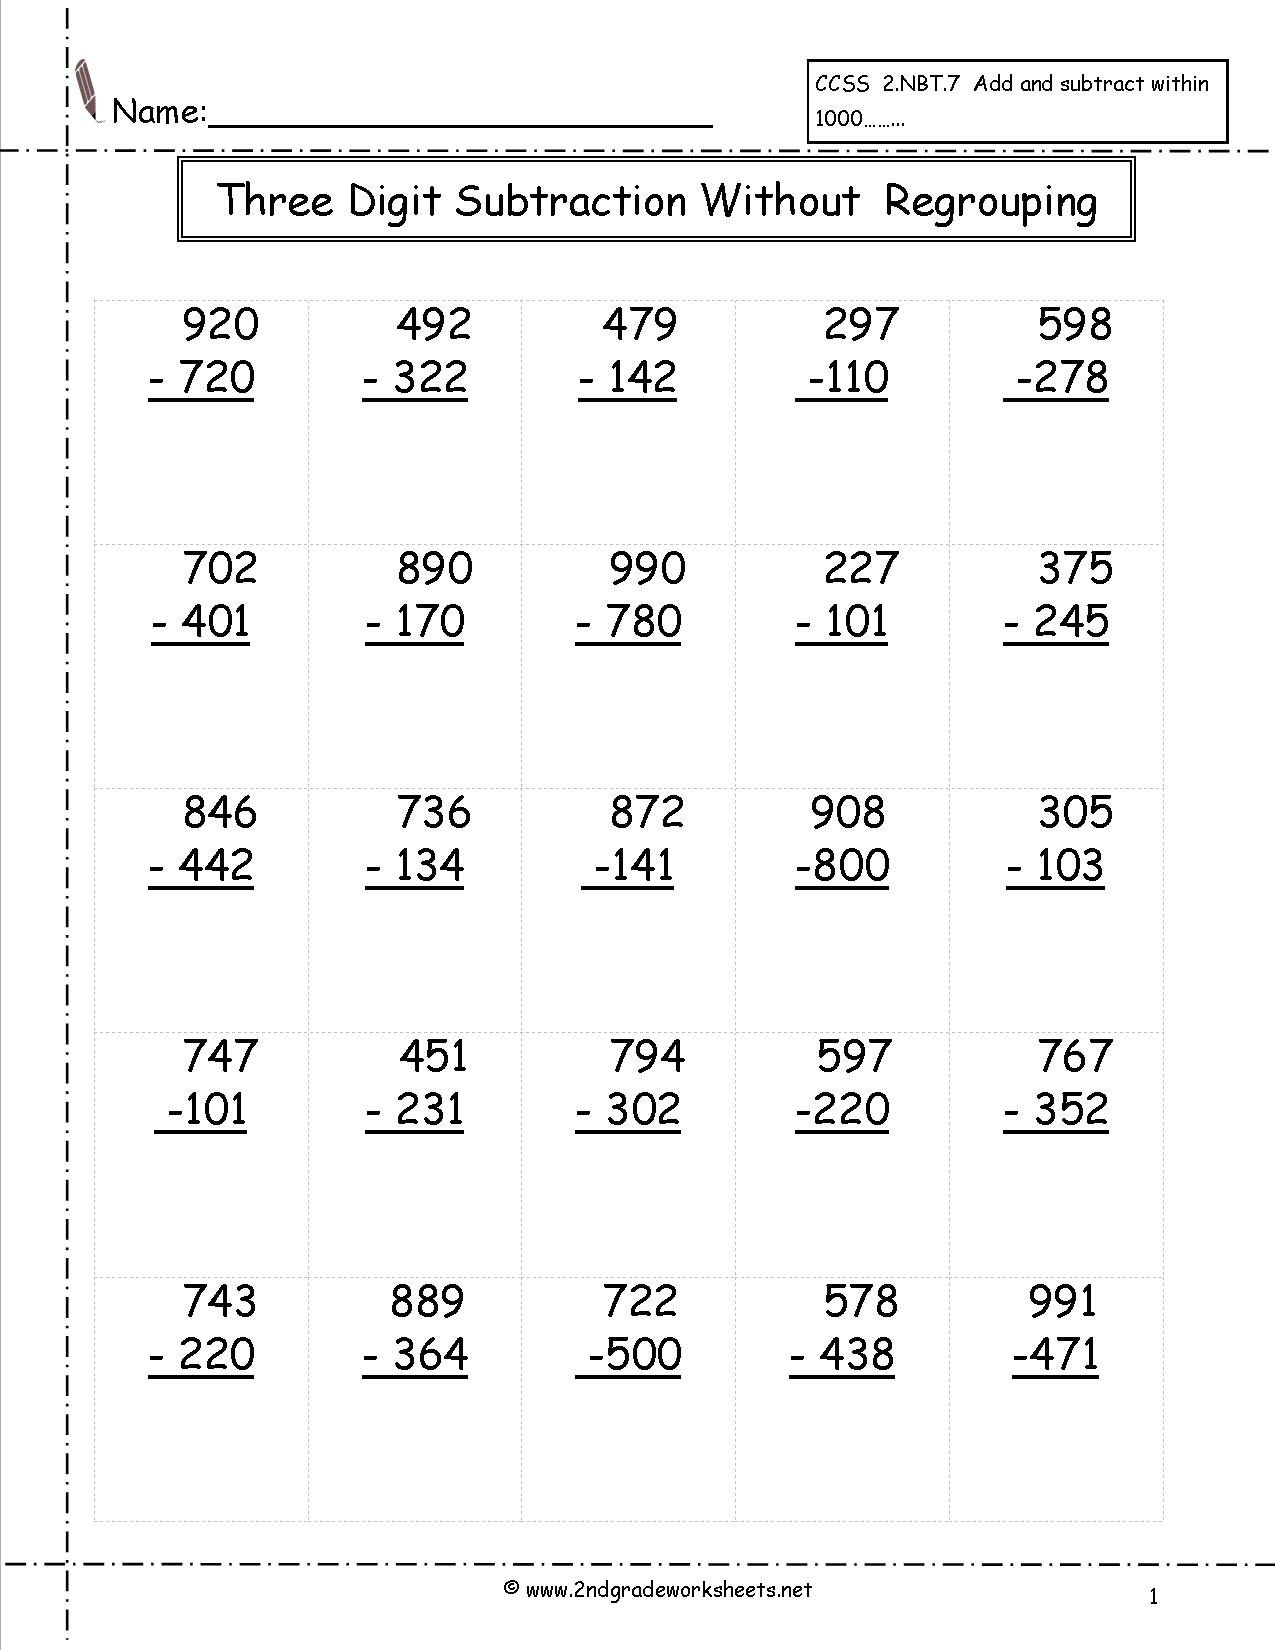 Three Digit Subtraction Worksheets - Free Printable 3 Digit Subtraction With Regrouping Worksheets